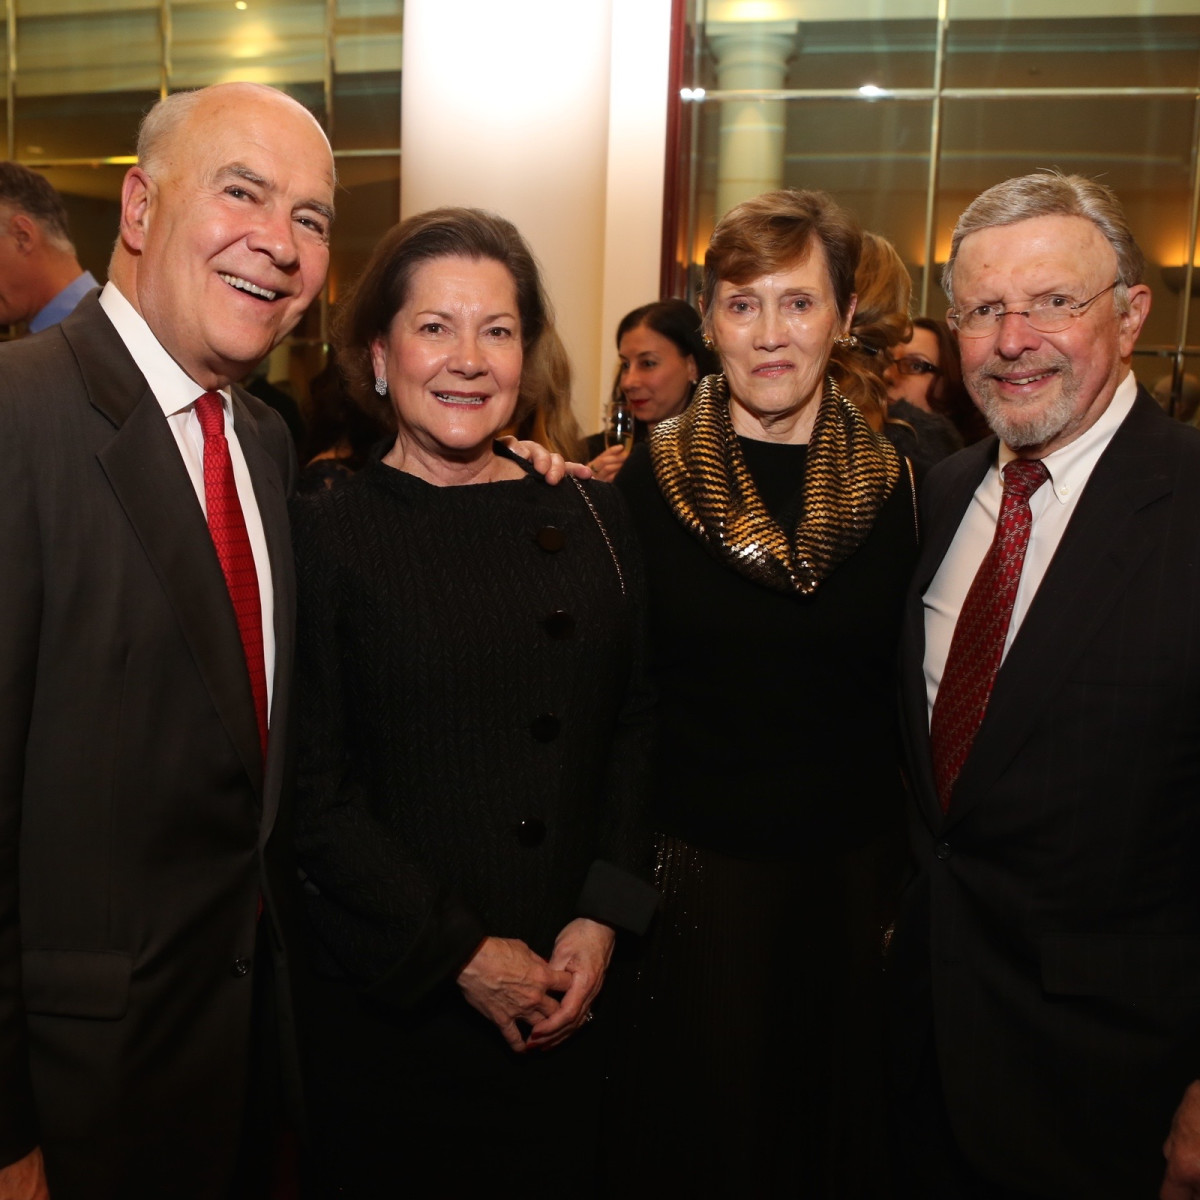 News, Houston Ballet Jubilee of Dance, Dec. 2015, Joe Hafner, Merrill Hafner, Sharon Erskine, Donald Erskine